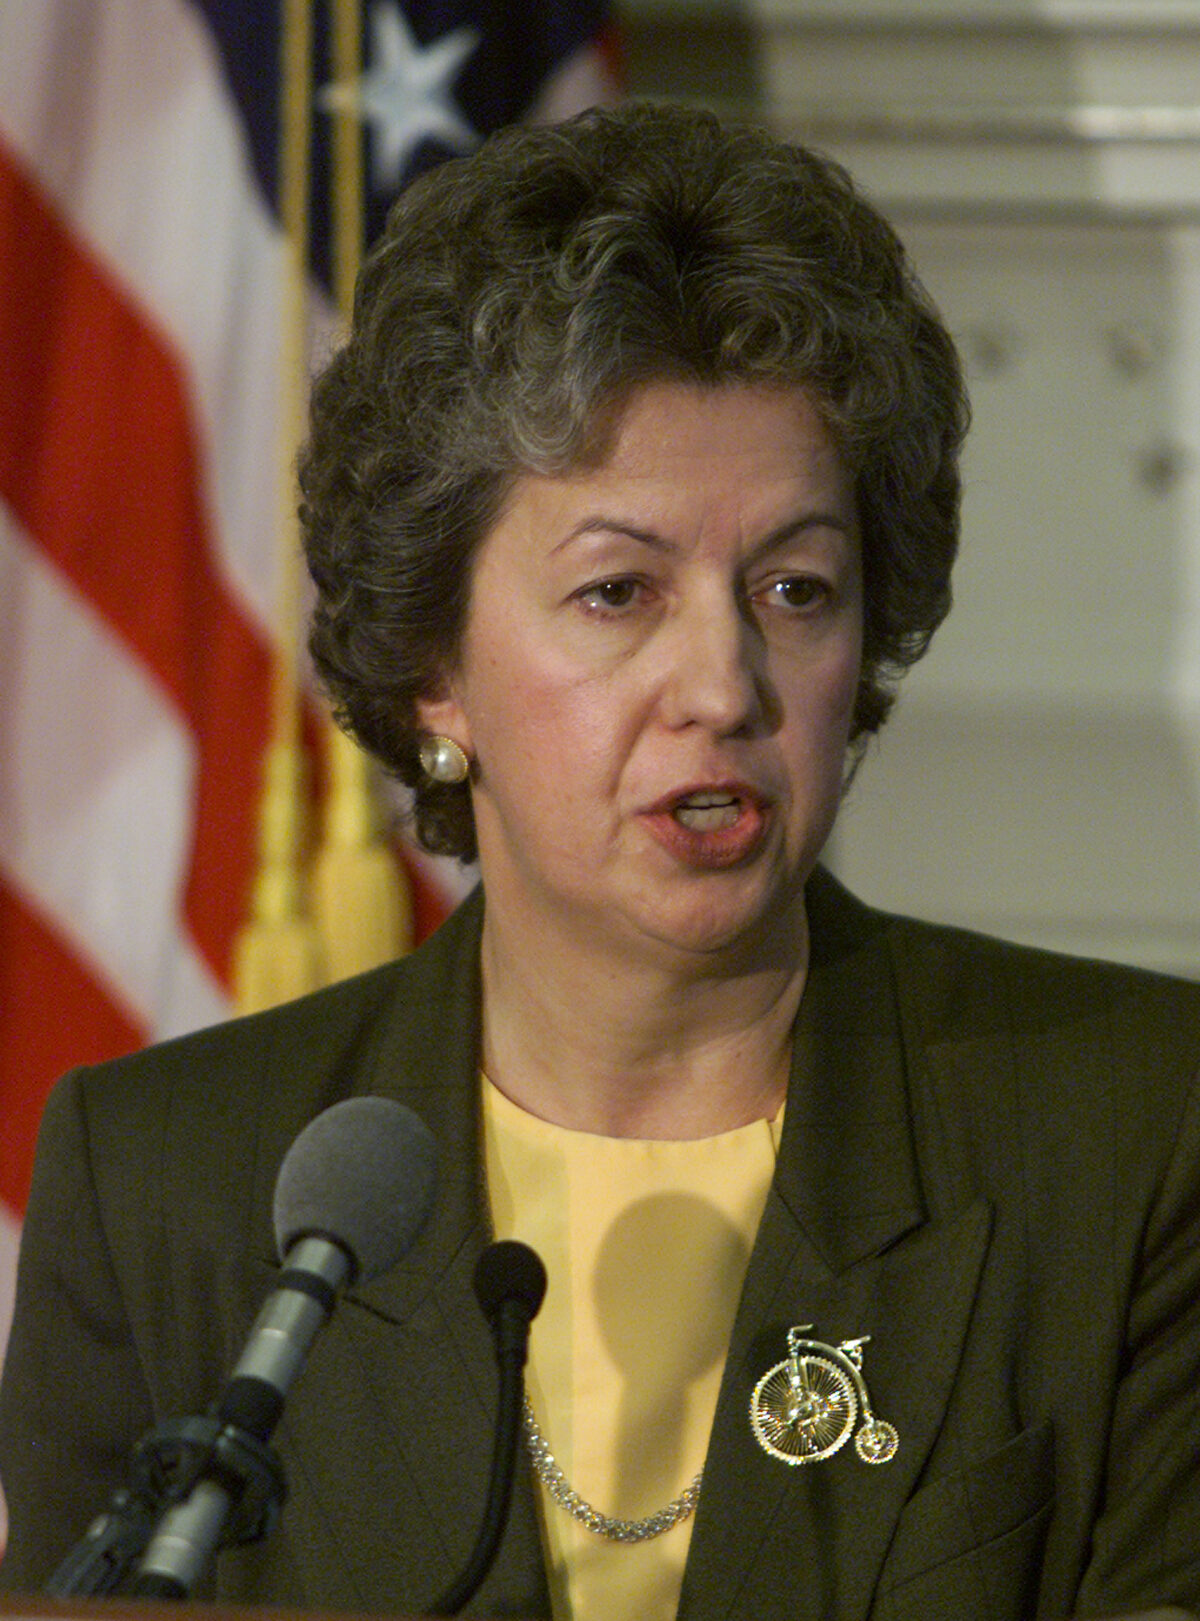 Federal Bureau of Prisons Director Kathleen Hawk Sawyer in a 2001 file photograph.